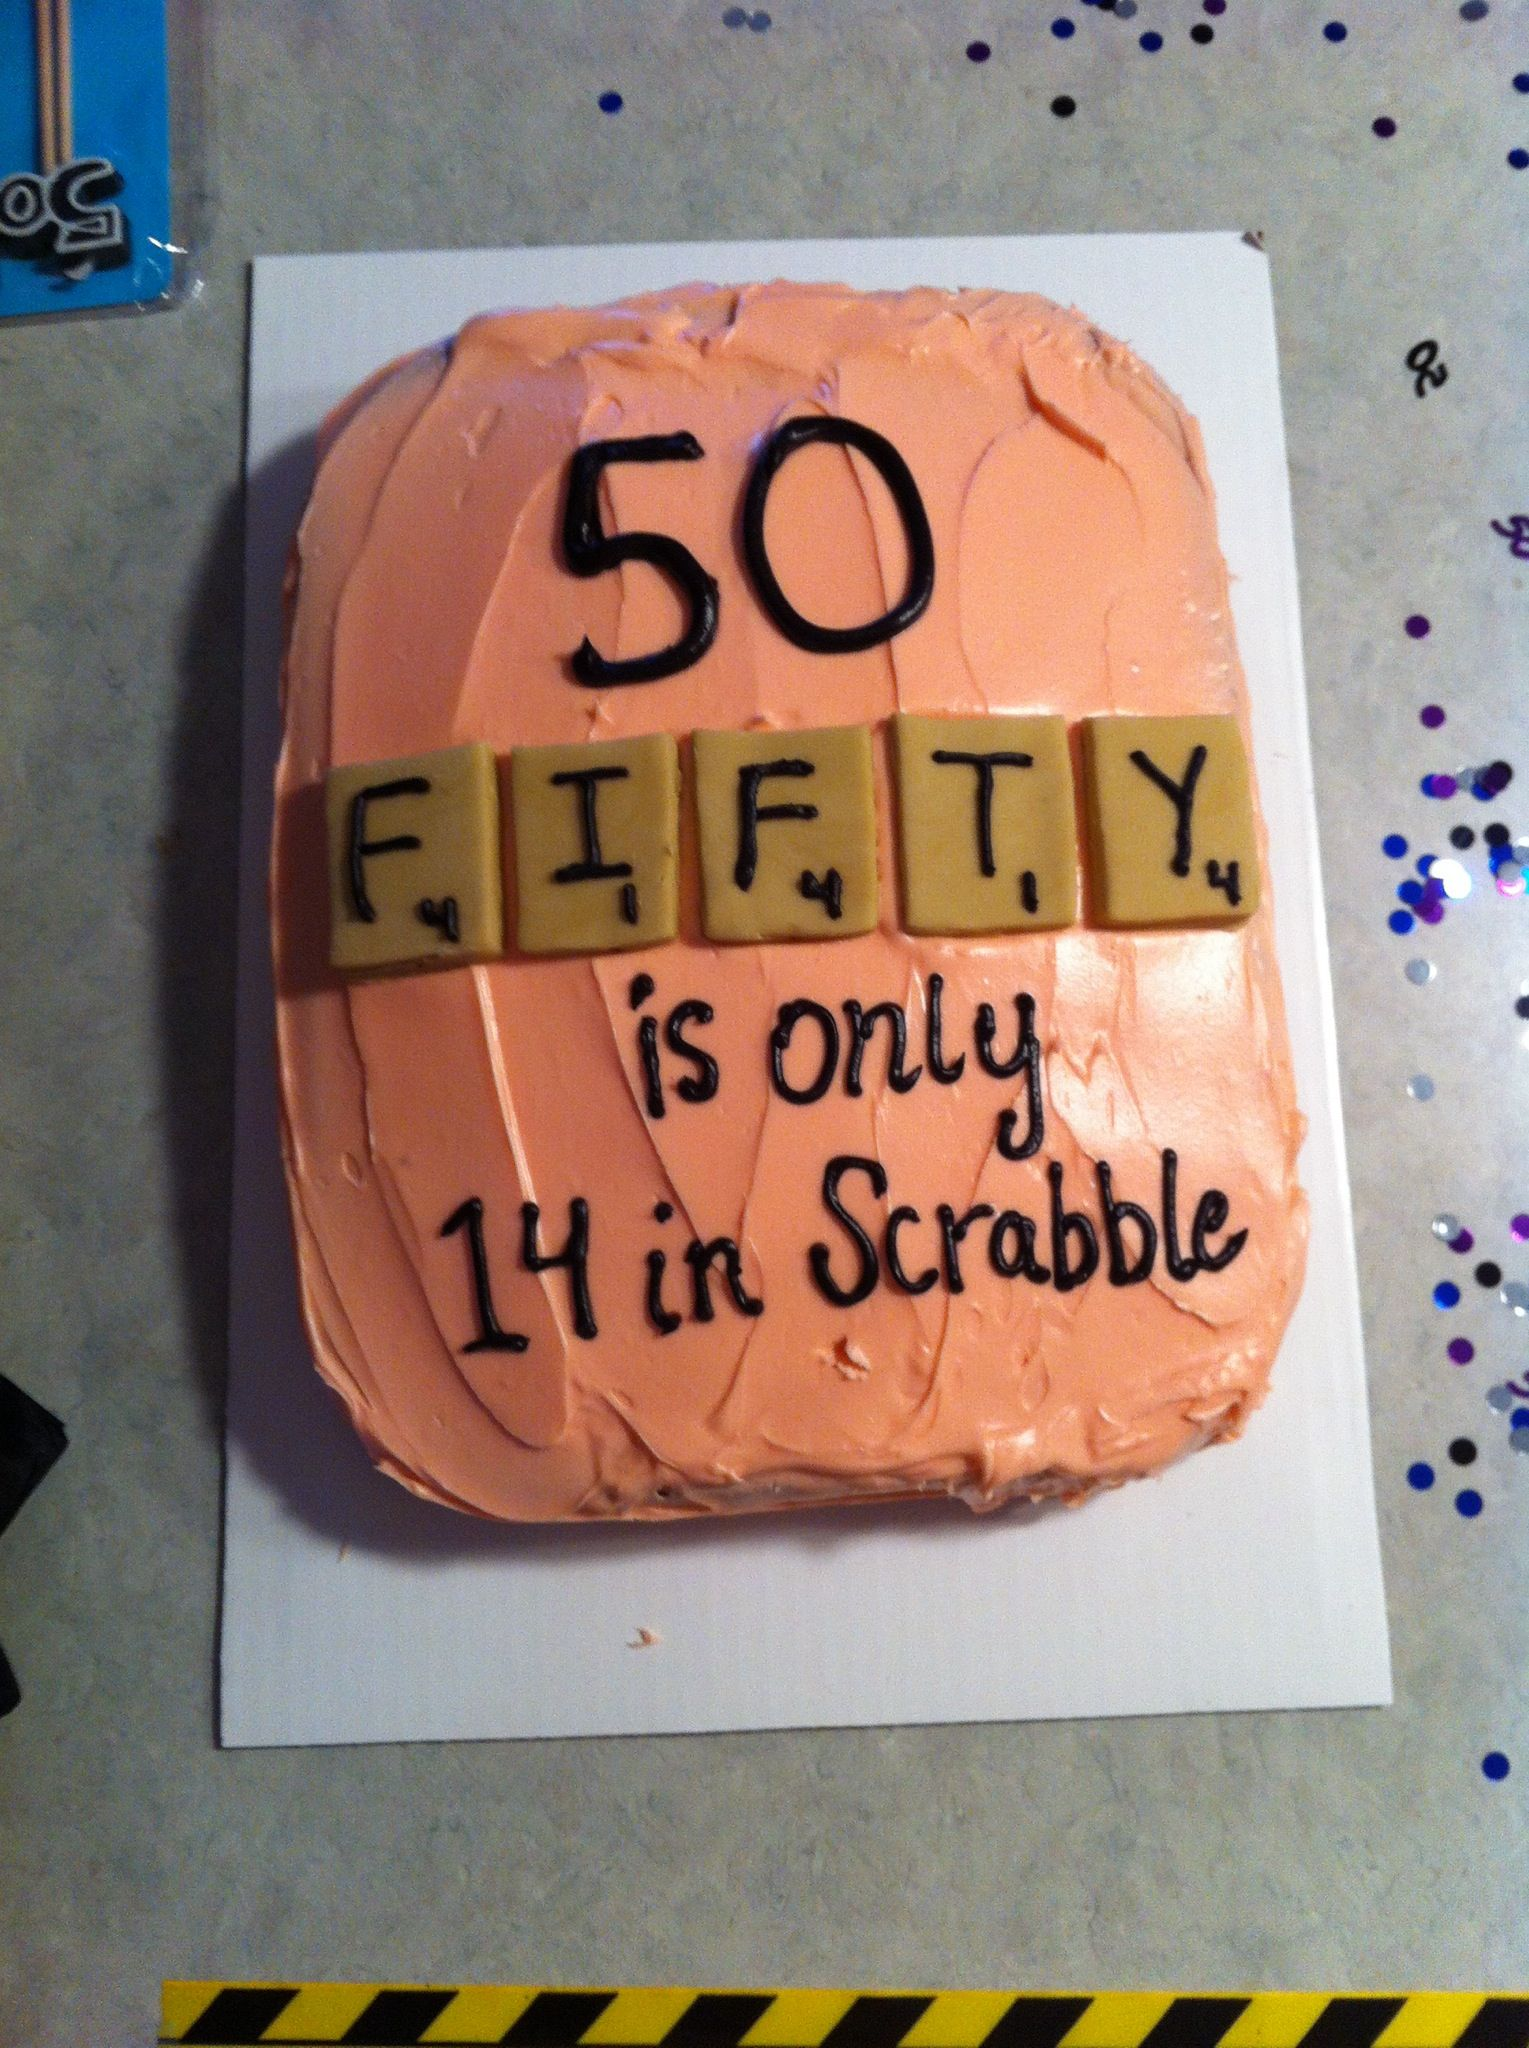 Scrabble Cake Great Funny 50th Birthday Cake50 Its Only A Number